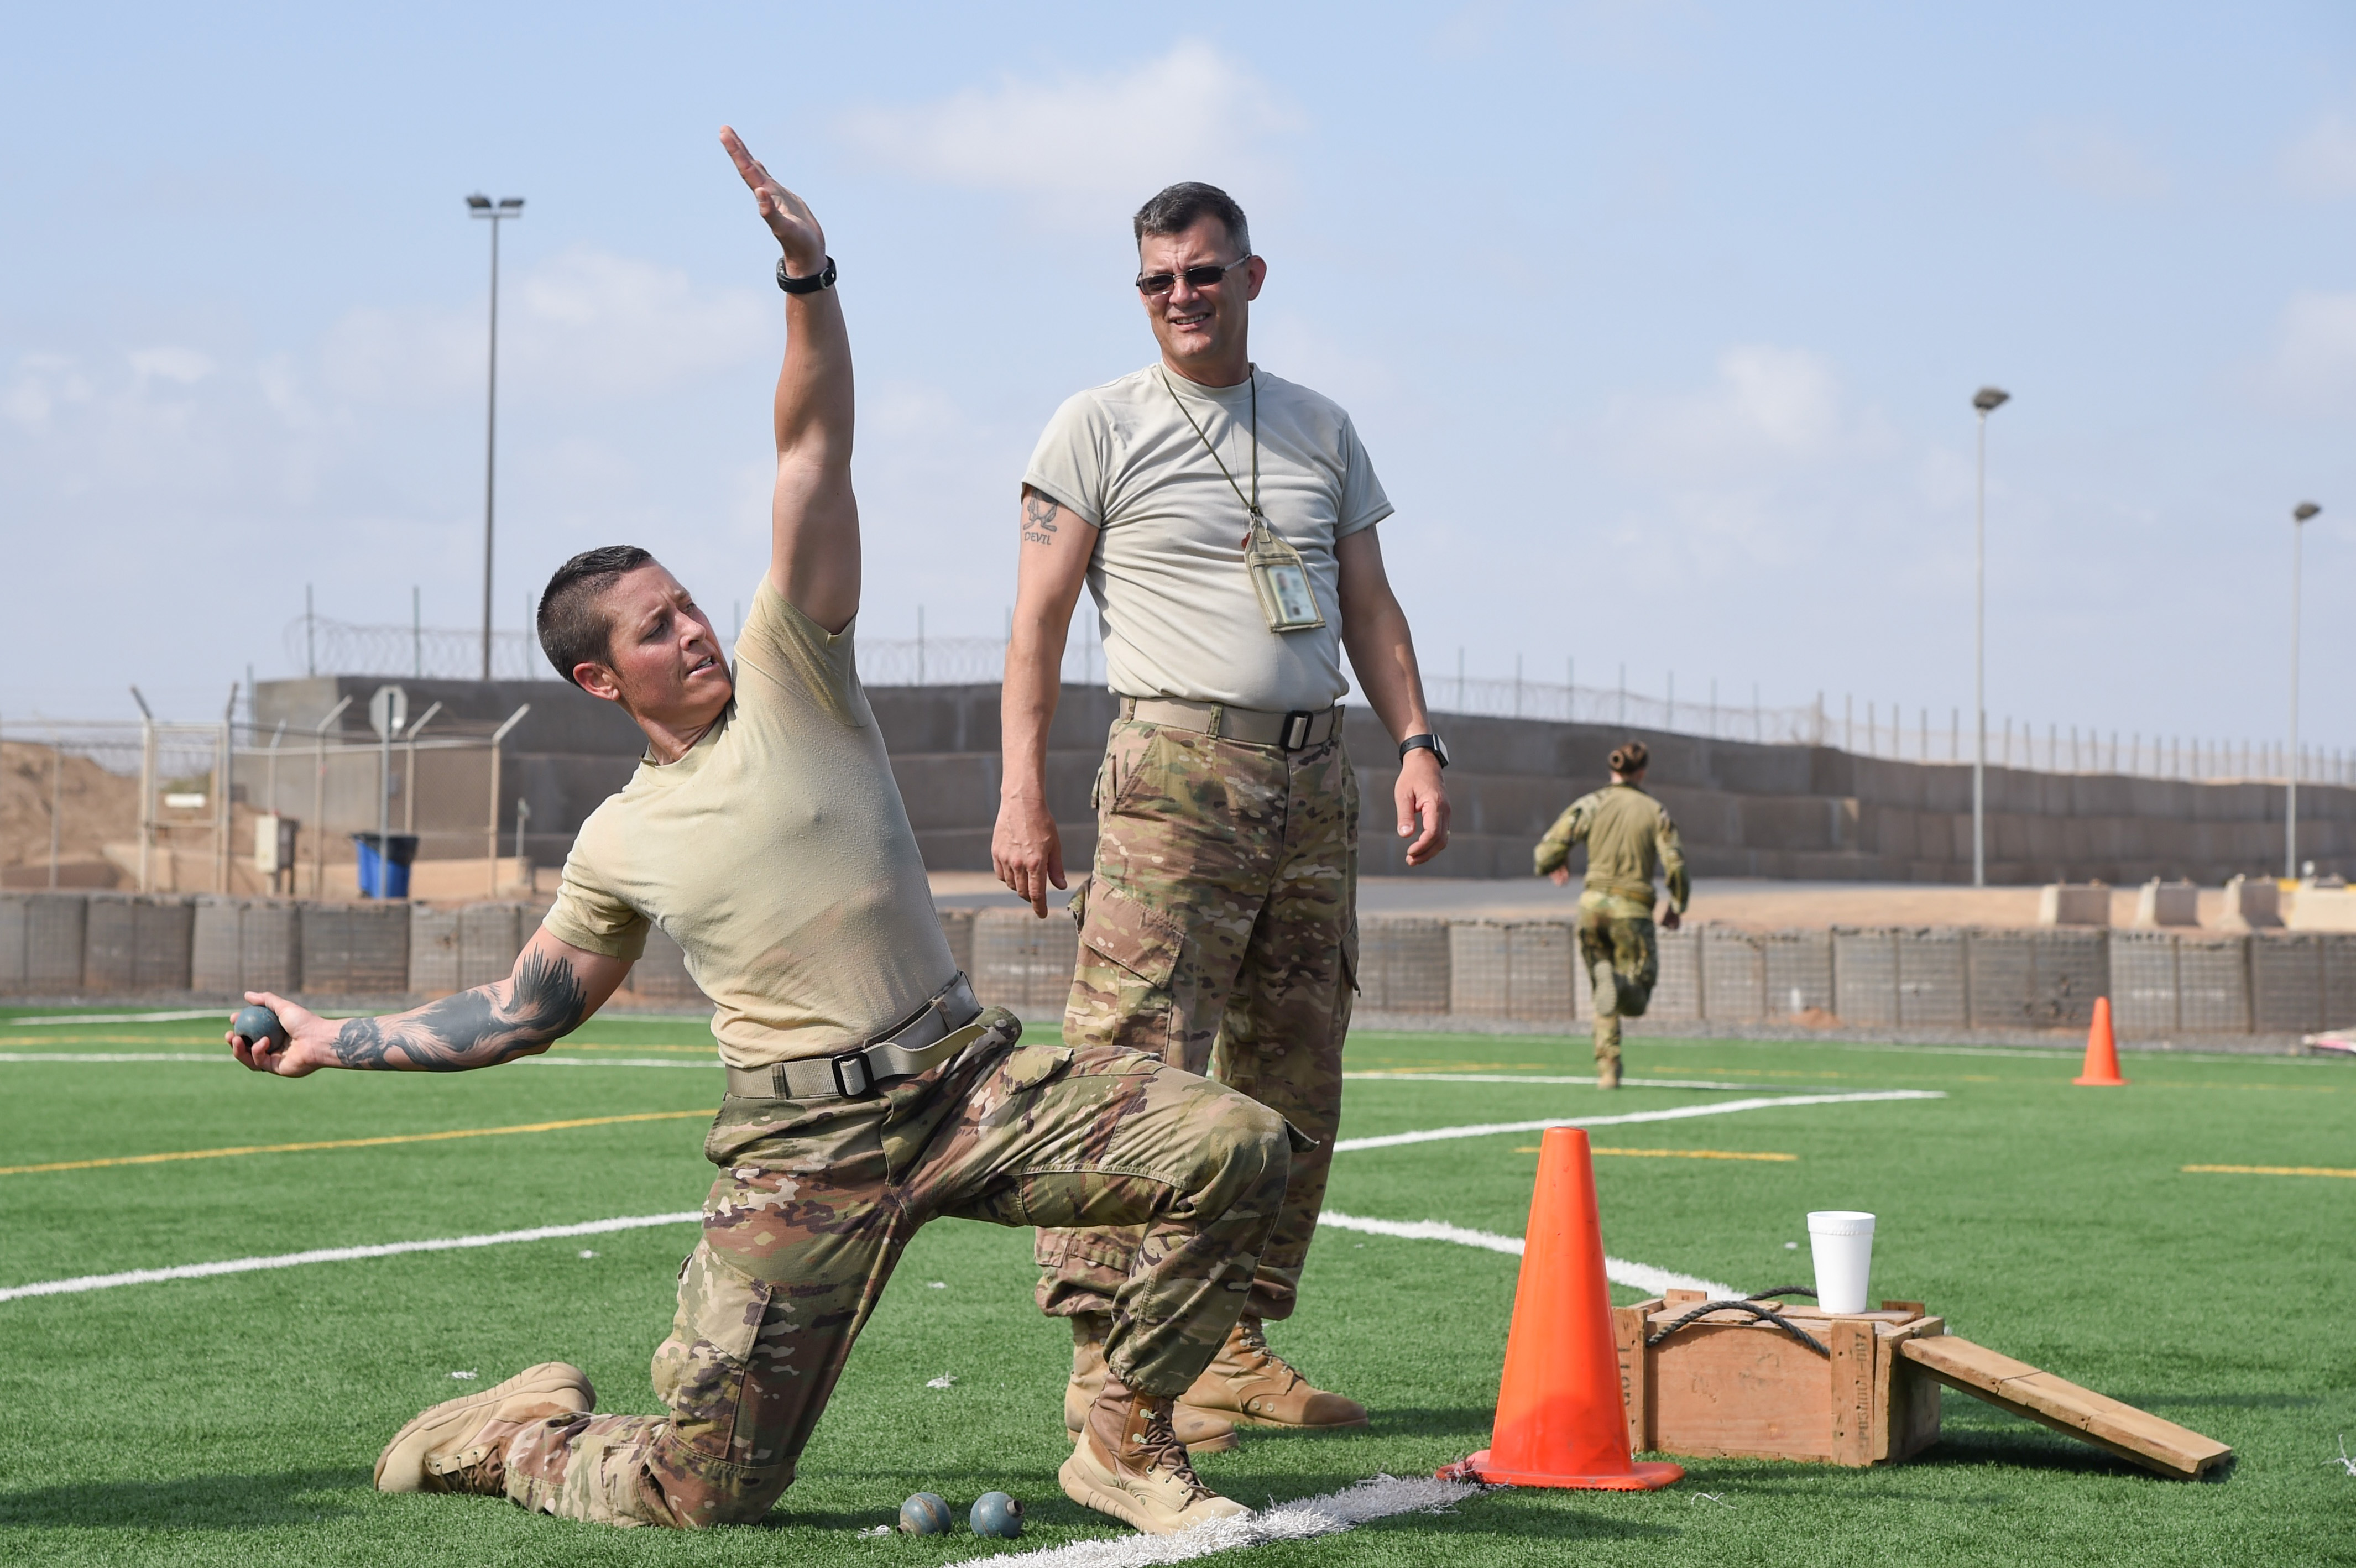 U.S. Army Staff Sgt. Hannah Mabel, Combined Joint Task Force-Horn of Africa, takes part in a grenade toss during the Joint Warrior Competition, Nov. 19, 2016, Camp Lemonnier, Djibouti. After the joint physical fitness test, participants started the joint combat fitness test. The combat test was comprised of a low crawl, tourniquet application, buddy carry, radio medical evacuation, grenade toss, tire flip, ammo can carry, dead lift, and rope climb. (U.S. Air National Guard photo by Staff Sgt. Penny Snoozy) (Portions of image blurred for security)